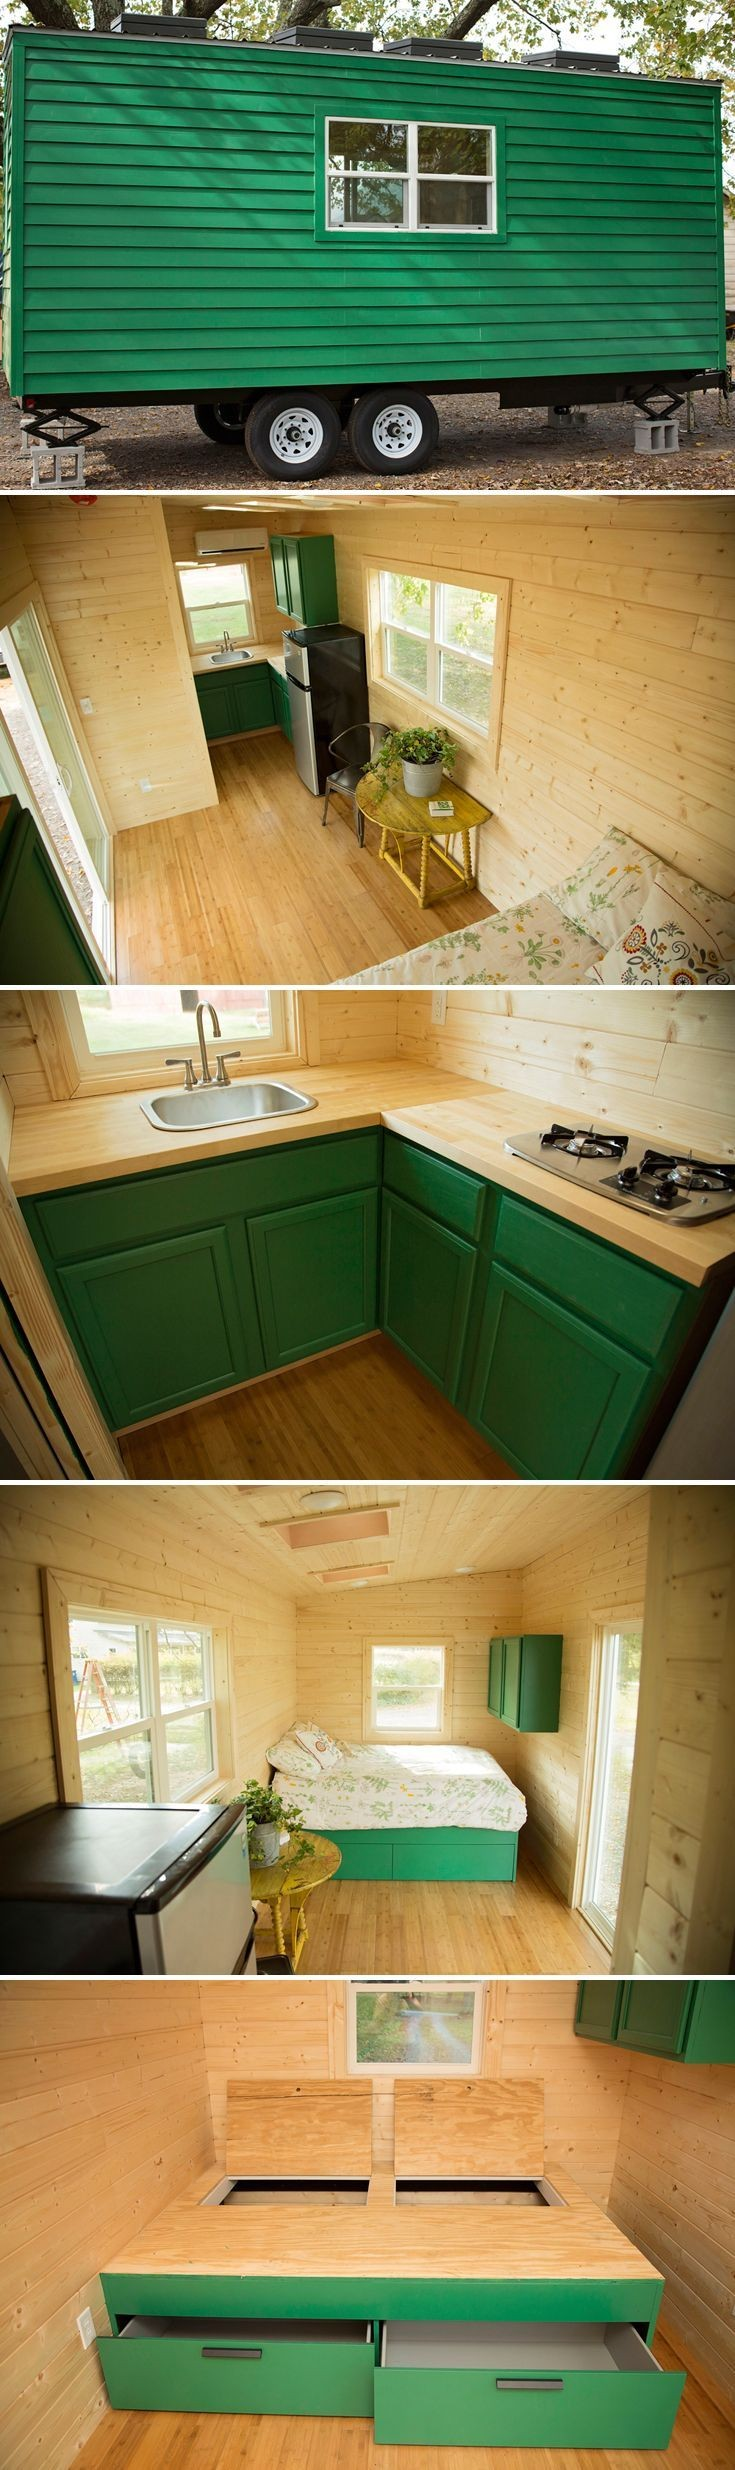 A client designed single level tiny house on wheels built by Perch & Nest and